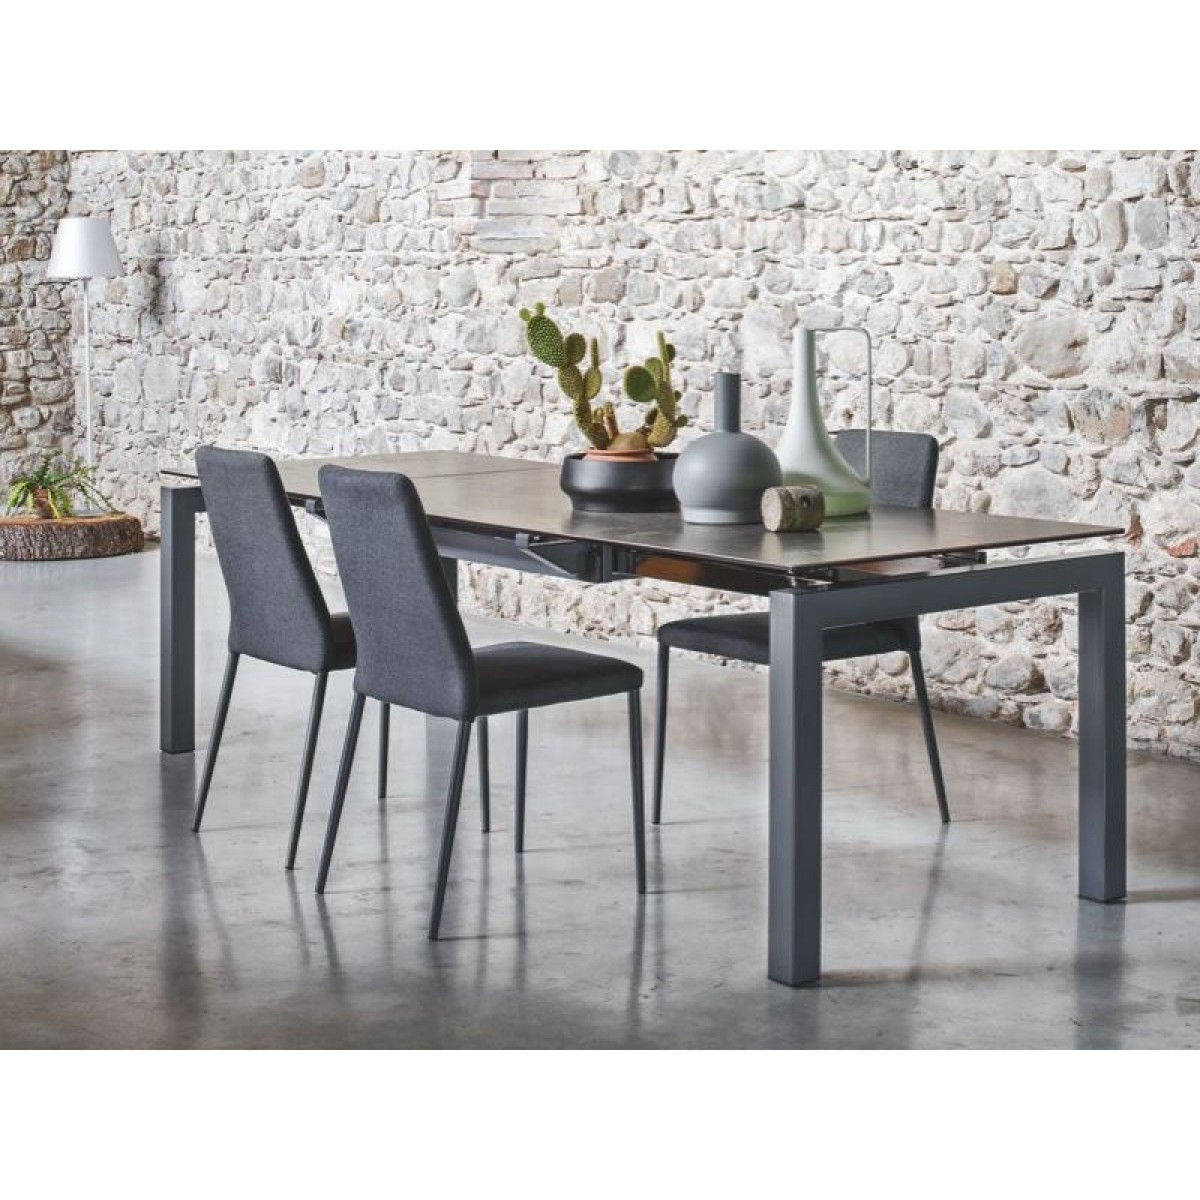 Table Extensible Ceramique Tavolo Airport Connubia Calligaris Allungabile Con Piano